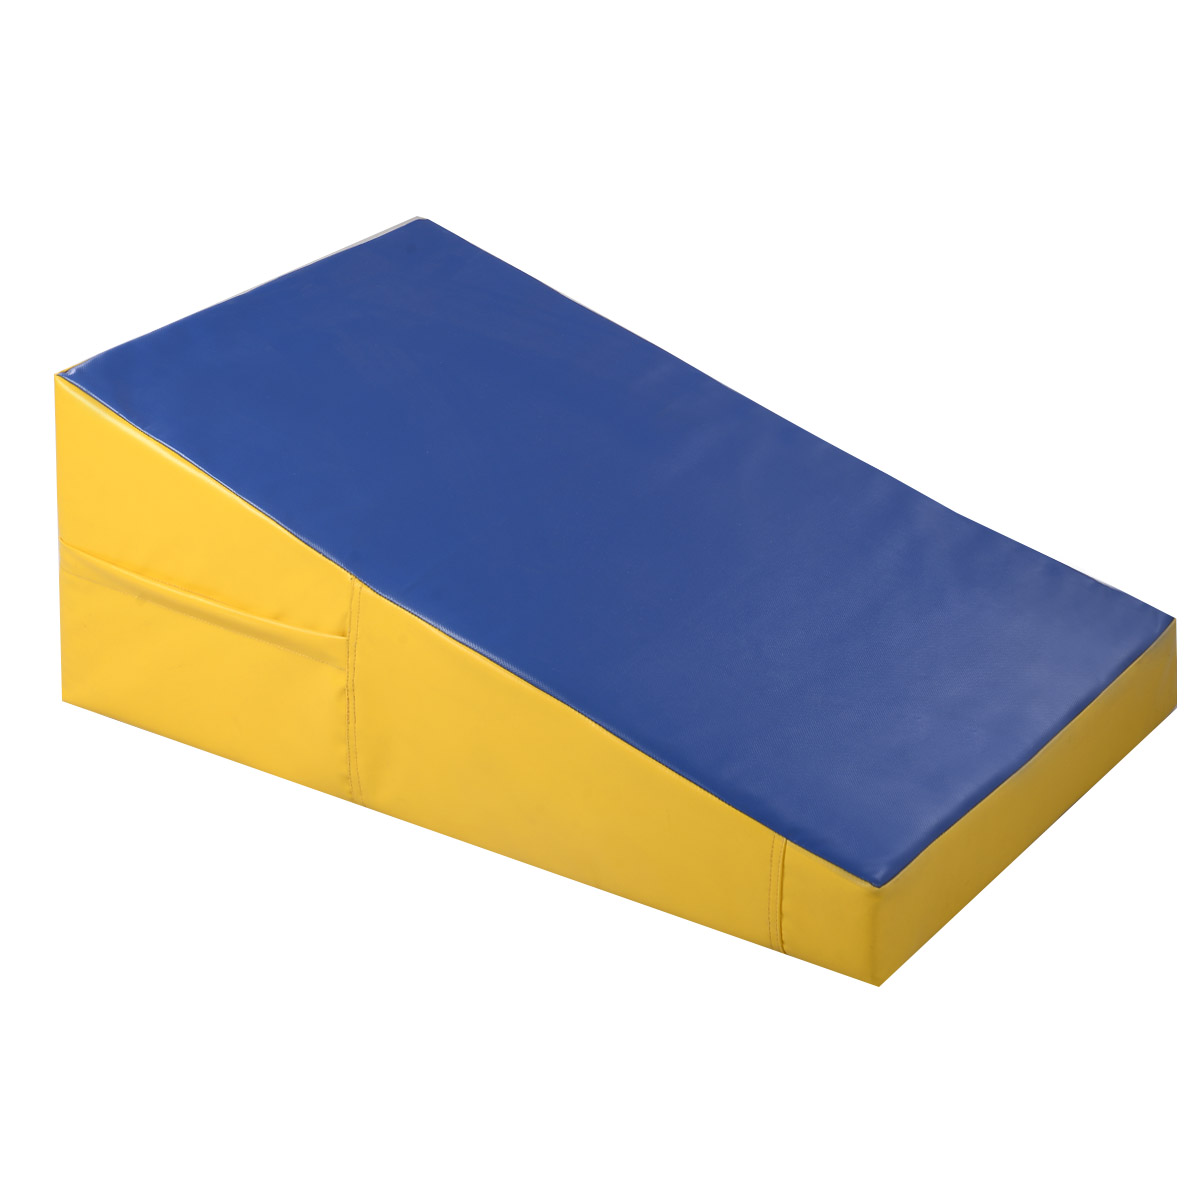 Costway Incline Wedge Ramp Gymnastics Mat Gym Sports